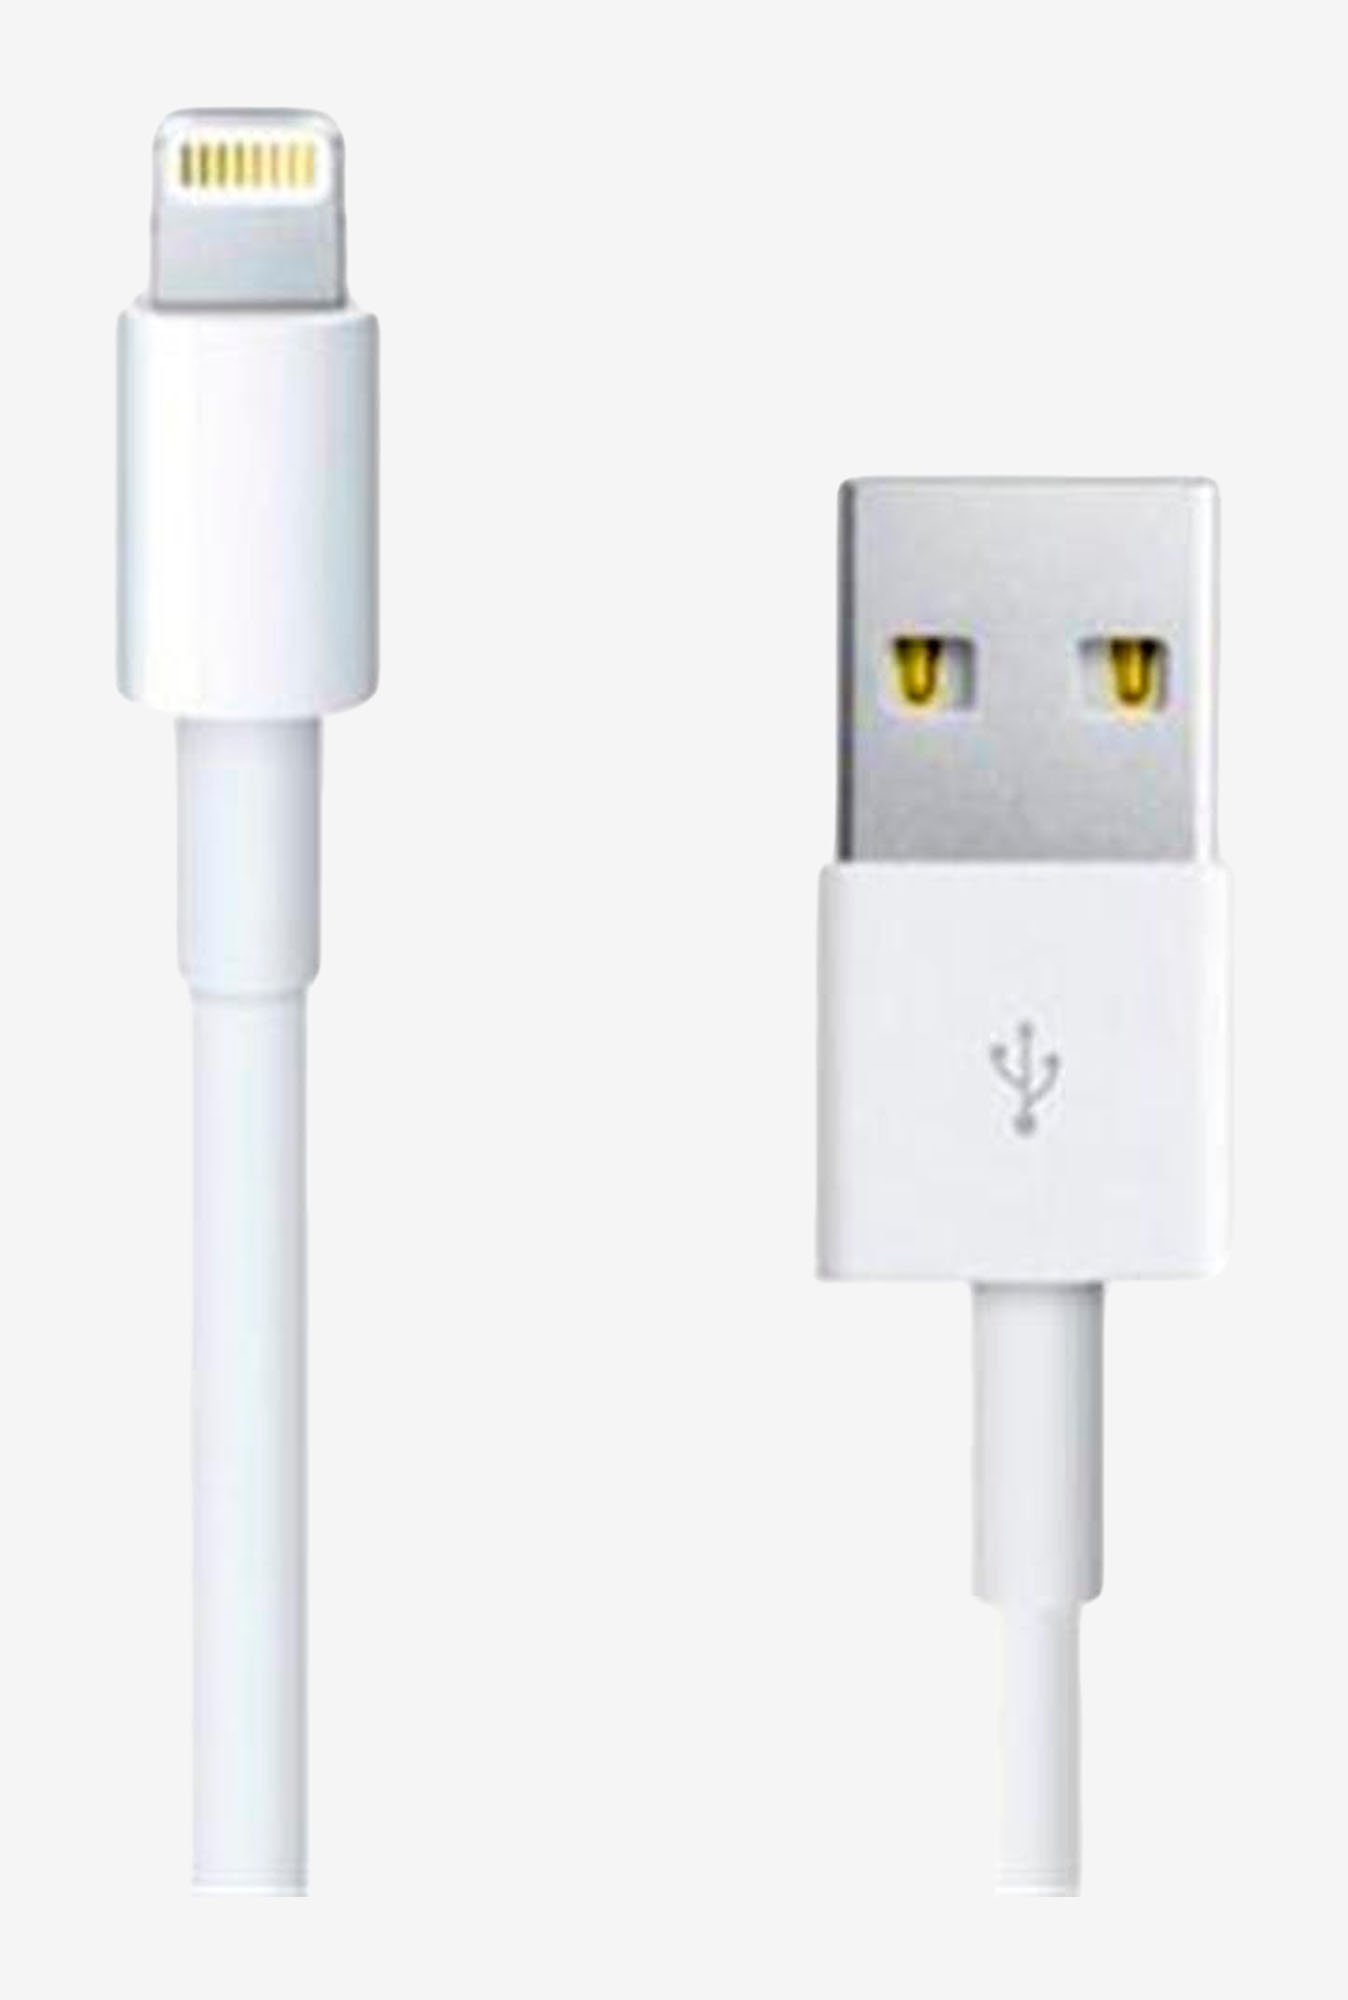 Callmate USB Data & Charging Cable for iPhone 5 White